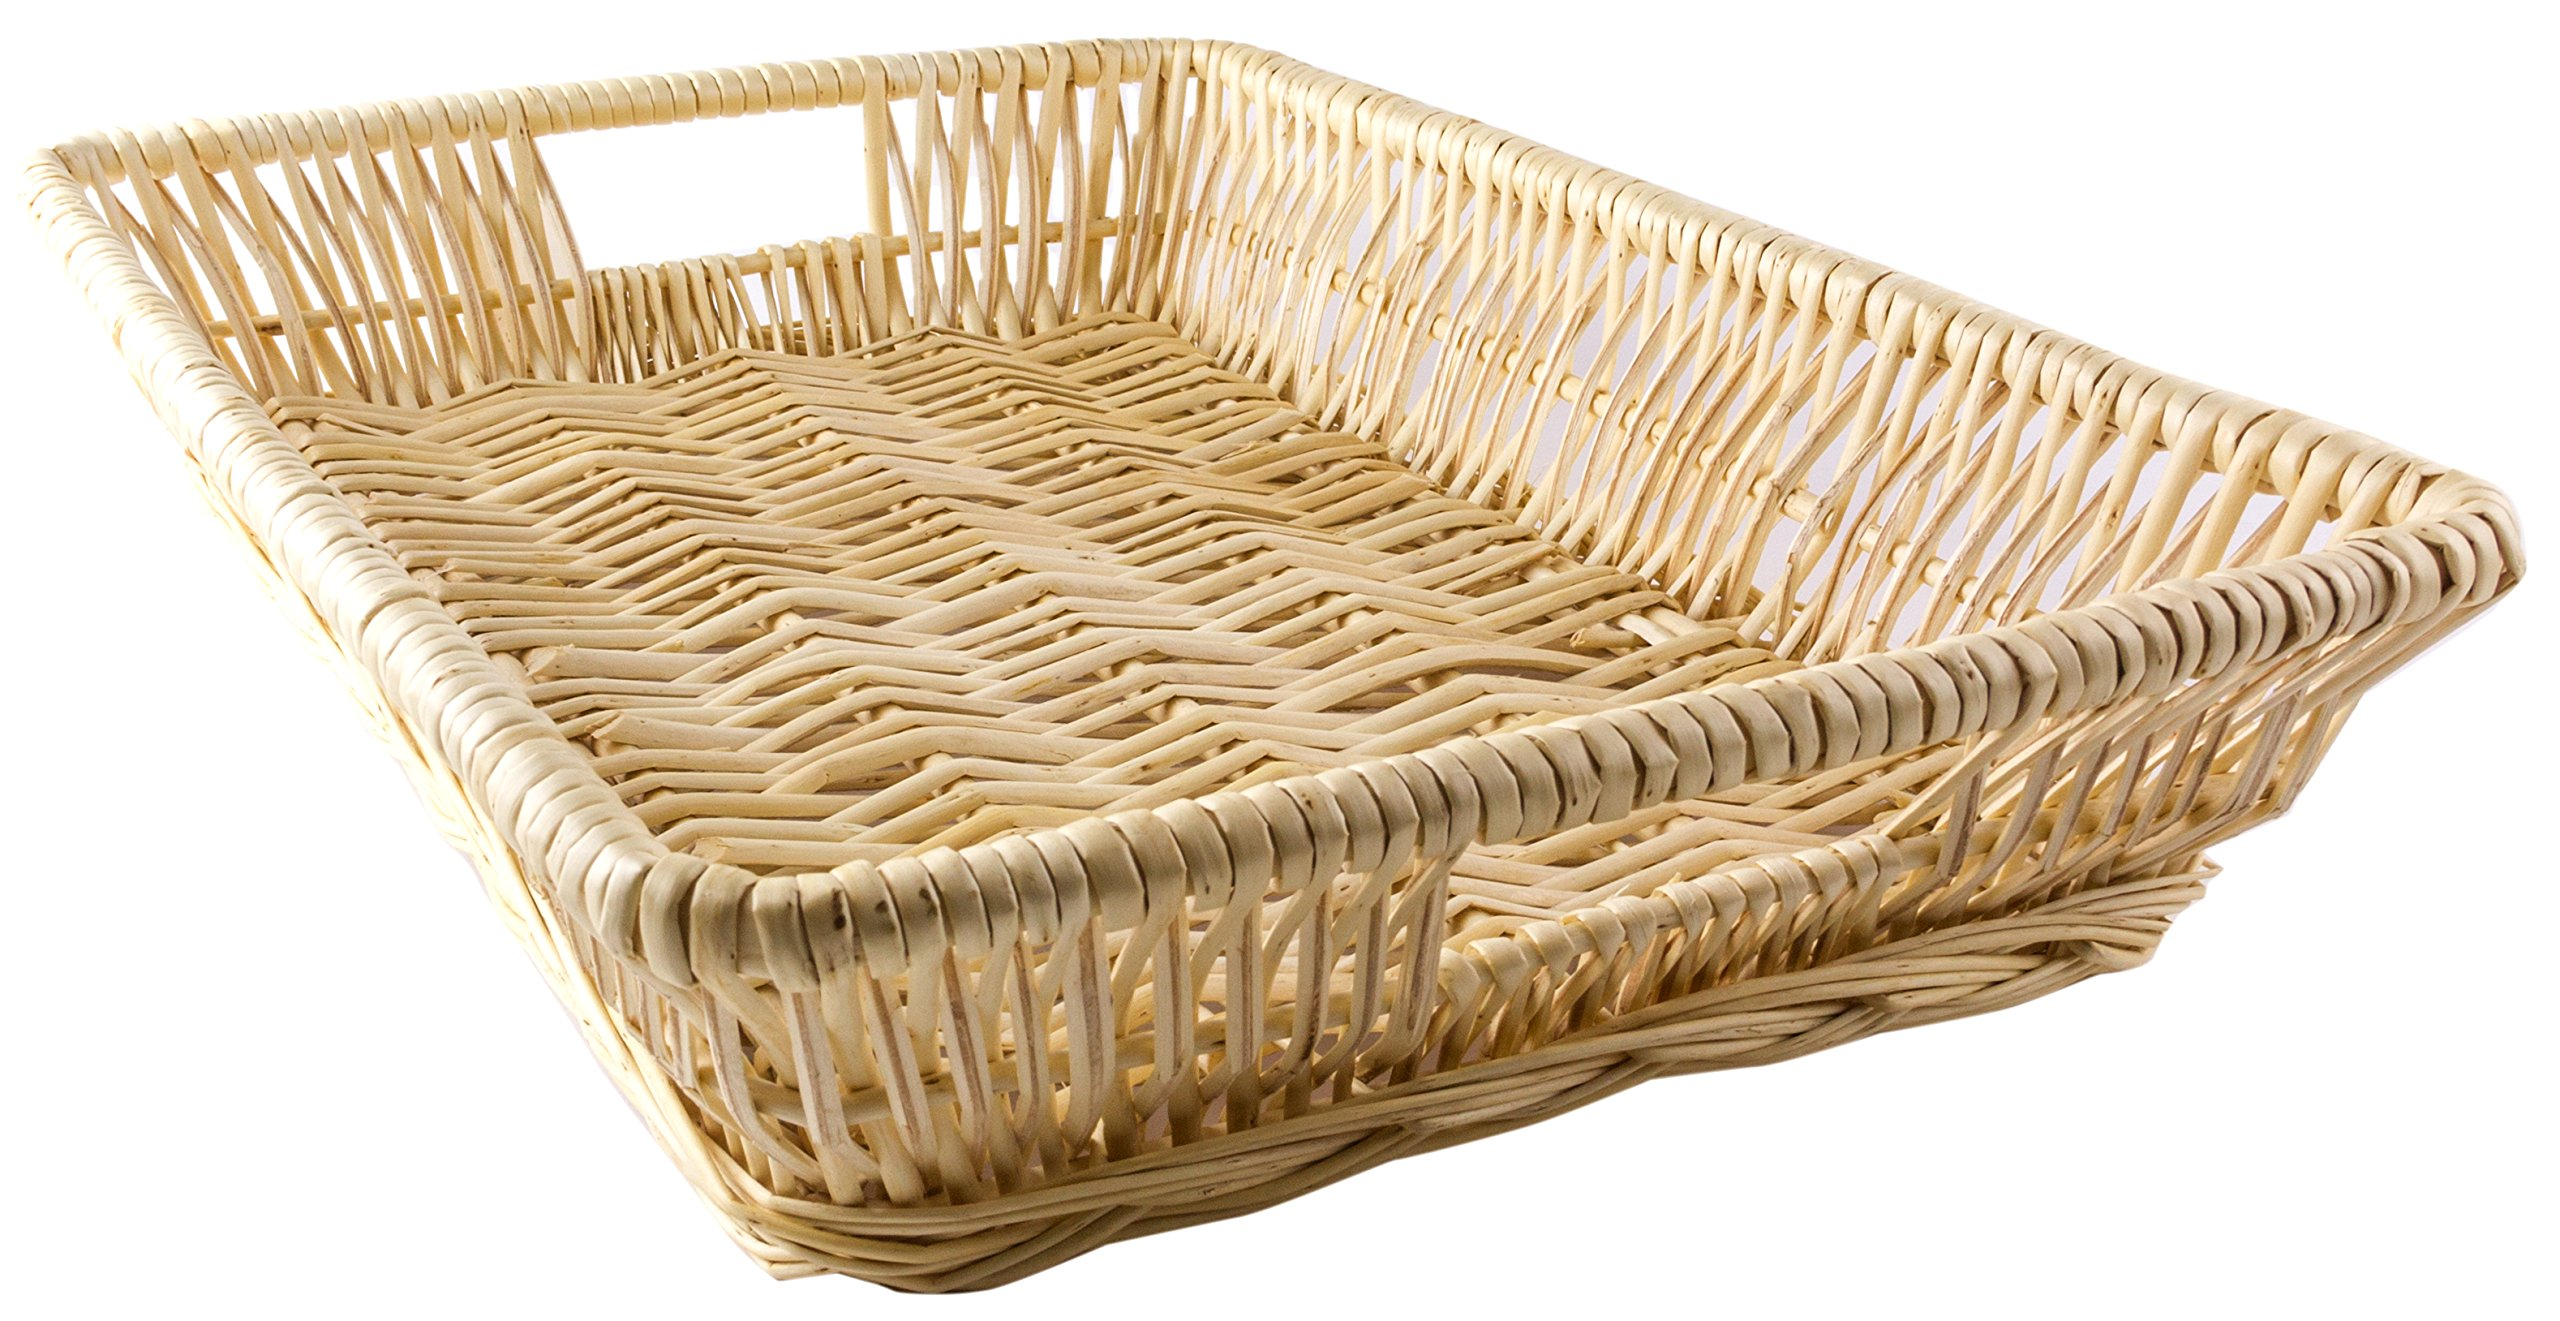 Natural Willow File/Serving Tray with Carved Handles - 14 x 10 x 3 Inches